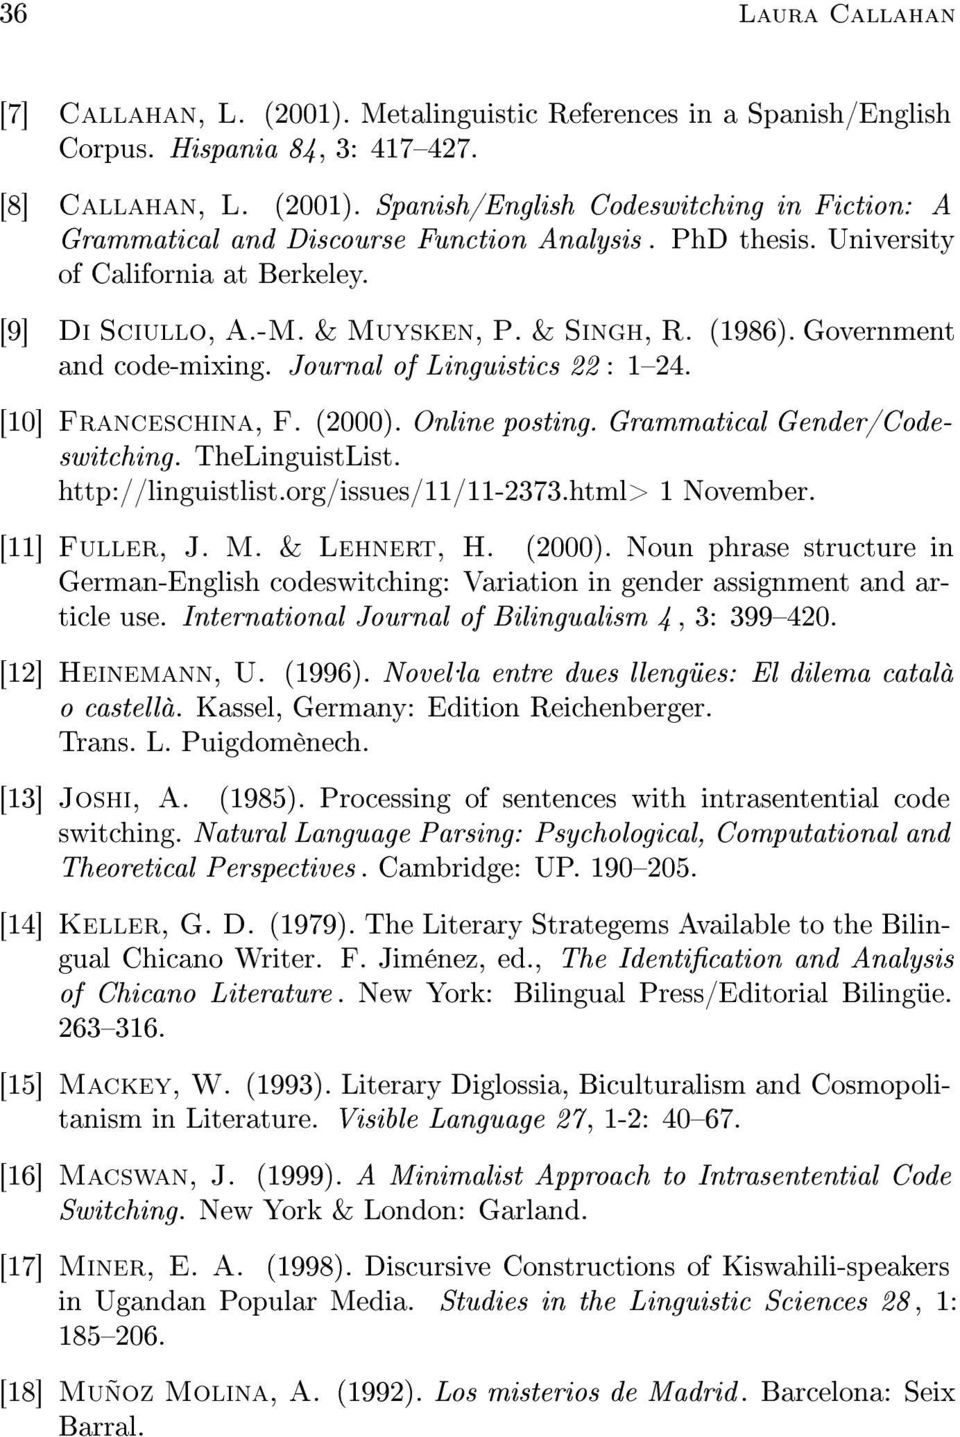 Online posting. Grammatical Gender/Codeswitching. TheLinguistList. http://linguistlist.org/issues/11/11-2373.html> 1 November. [11] Fuller, J. M. & Lehnert, H. (2000).